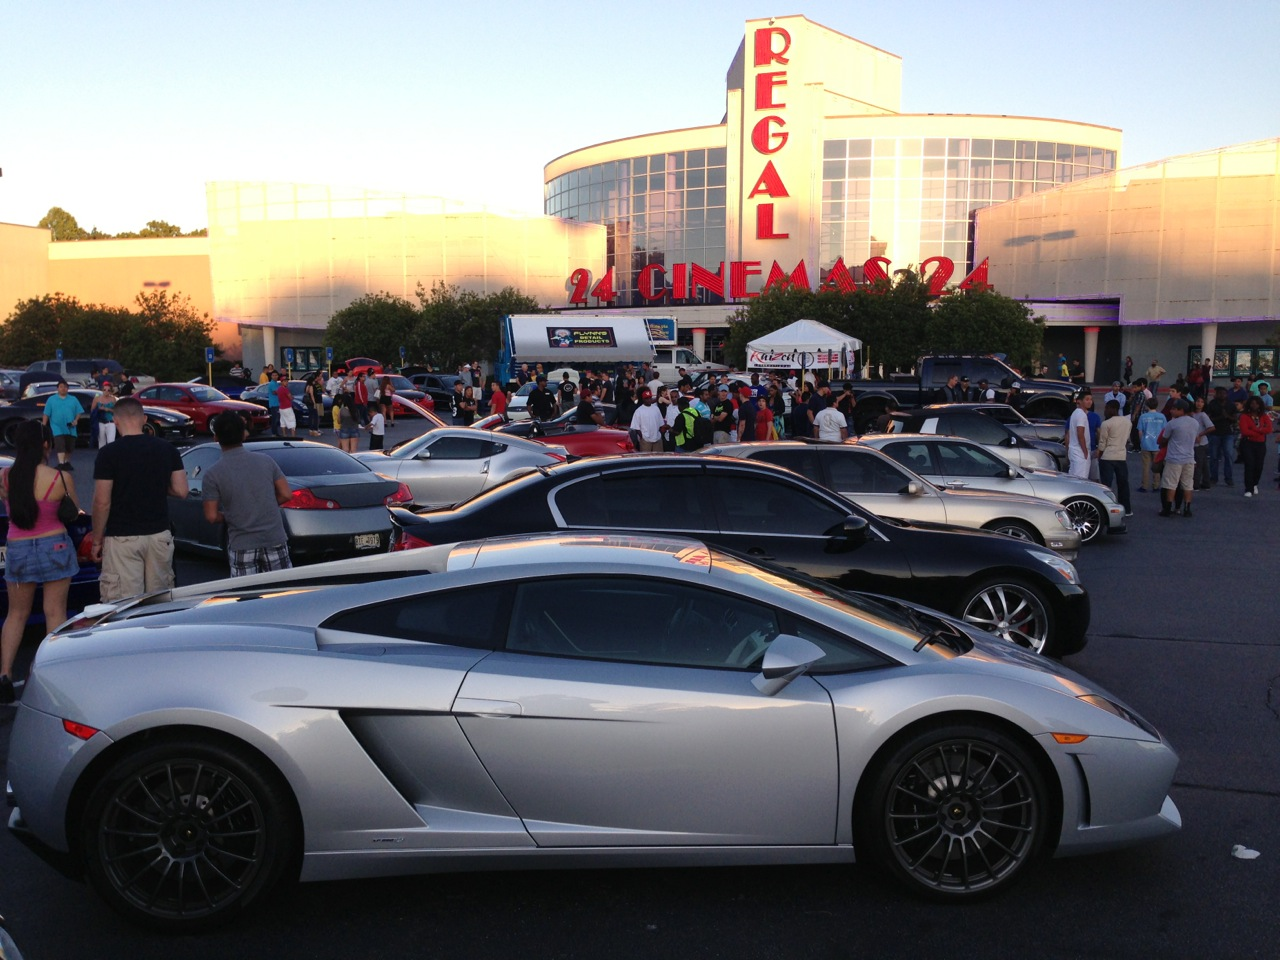 How Can I Get a Job in the Exotic Car Business? – Ed Bolian